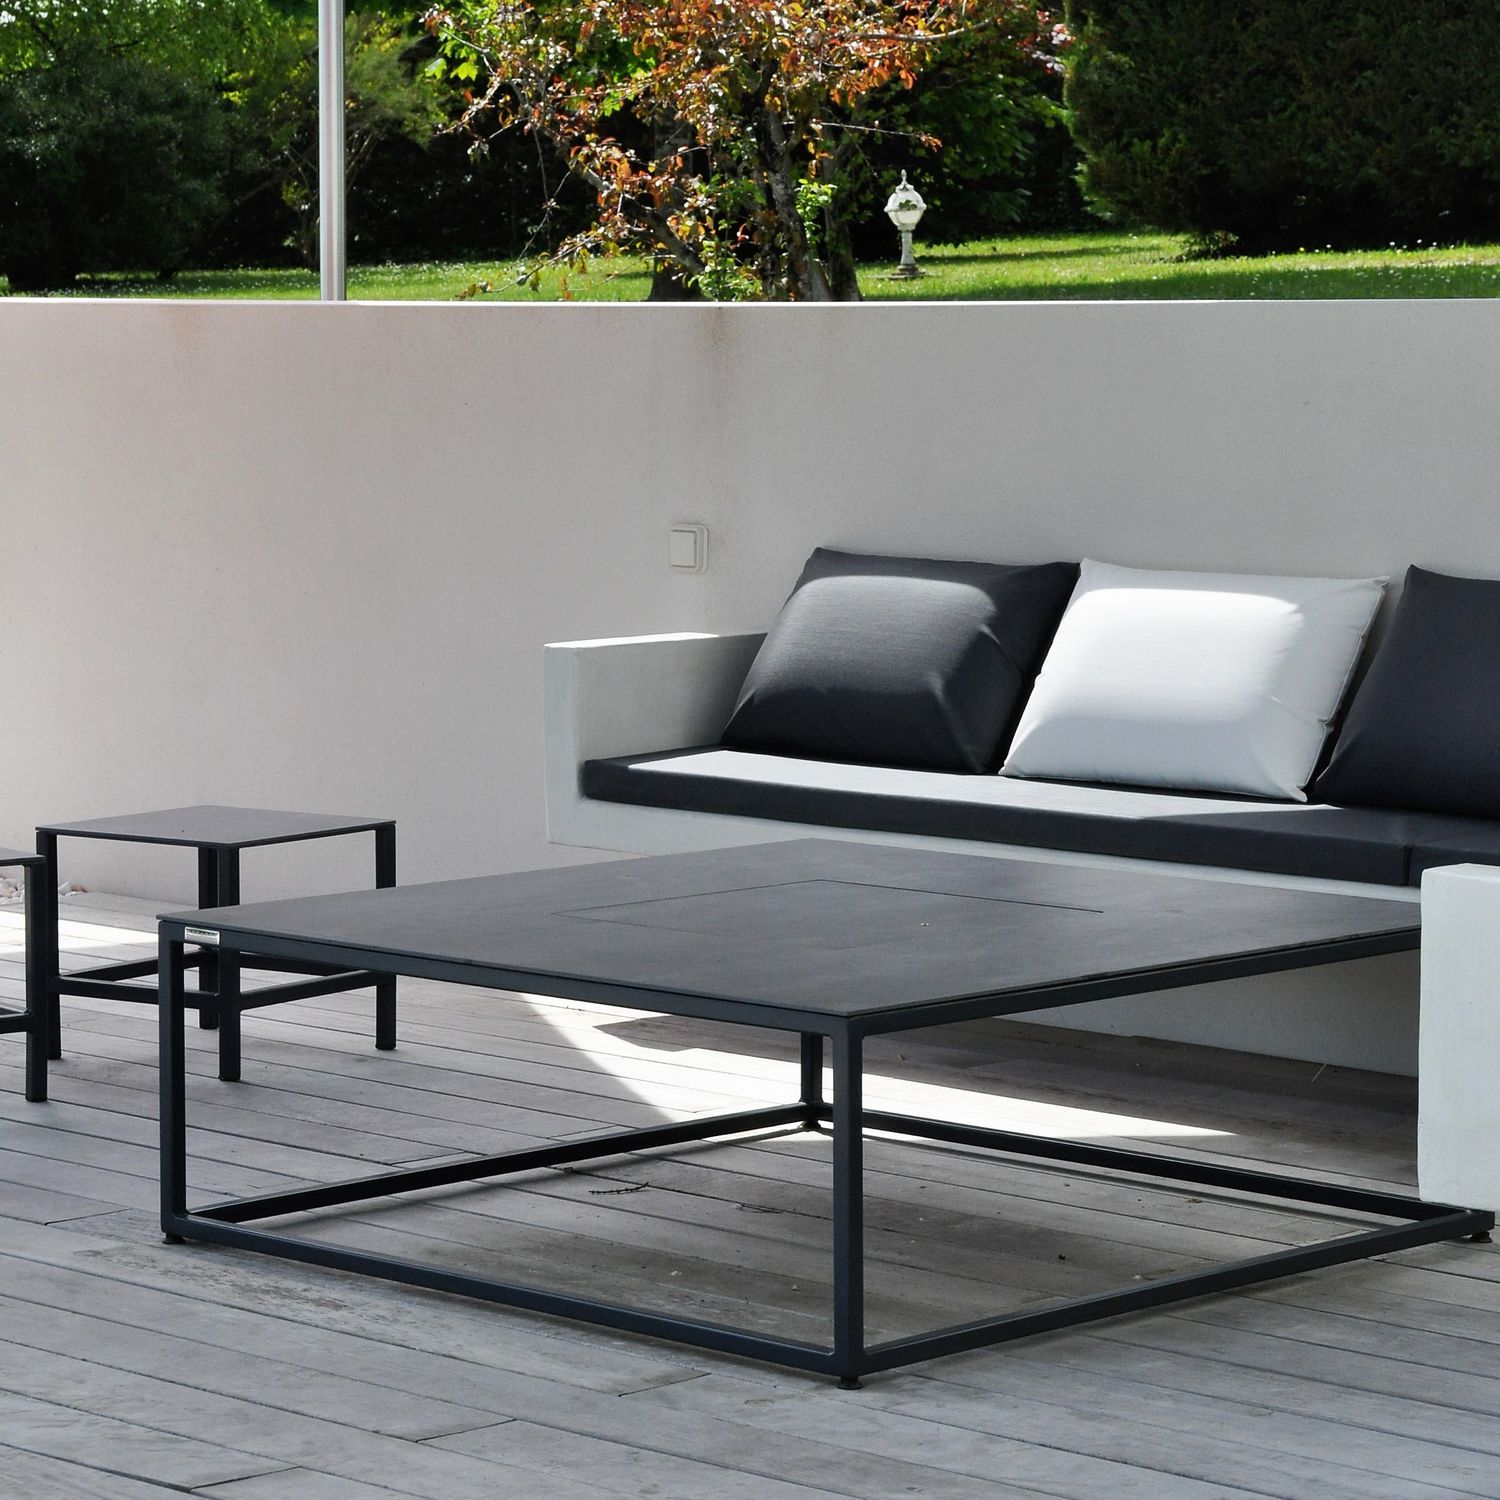 Contemporary coffee table / stainless steel / square / garden ...